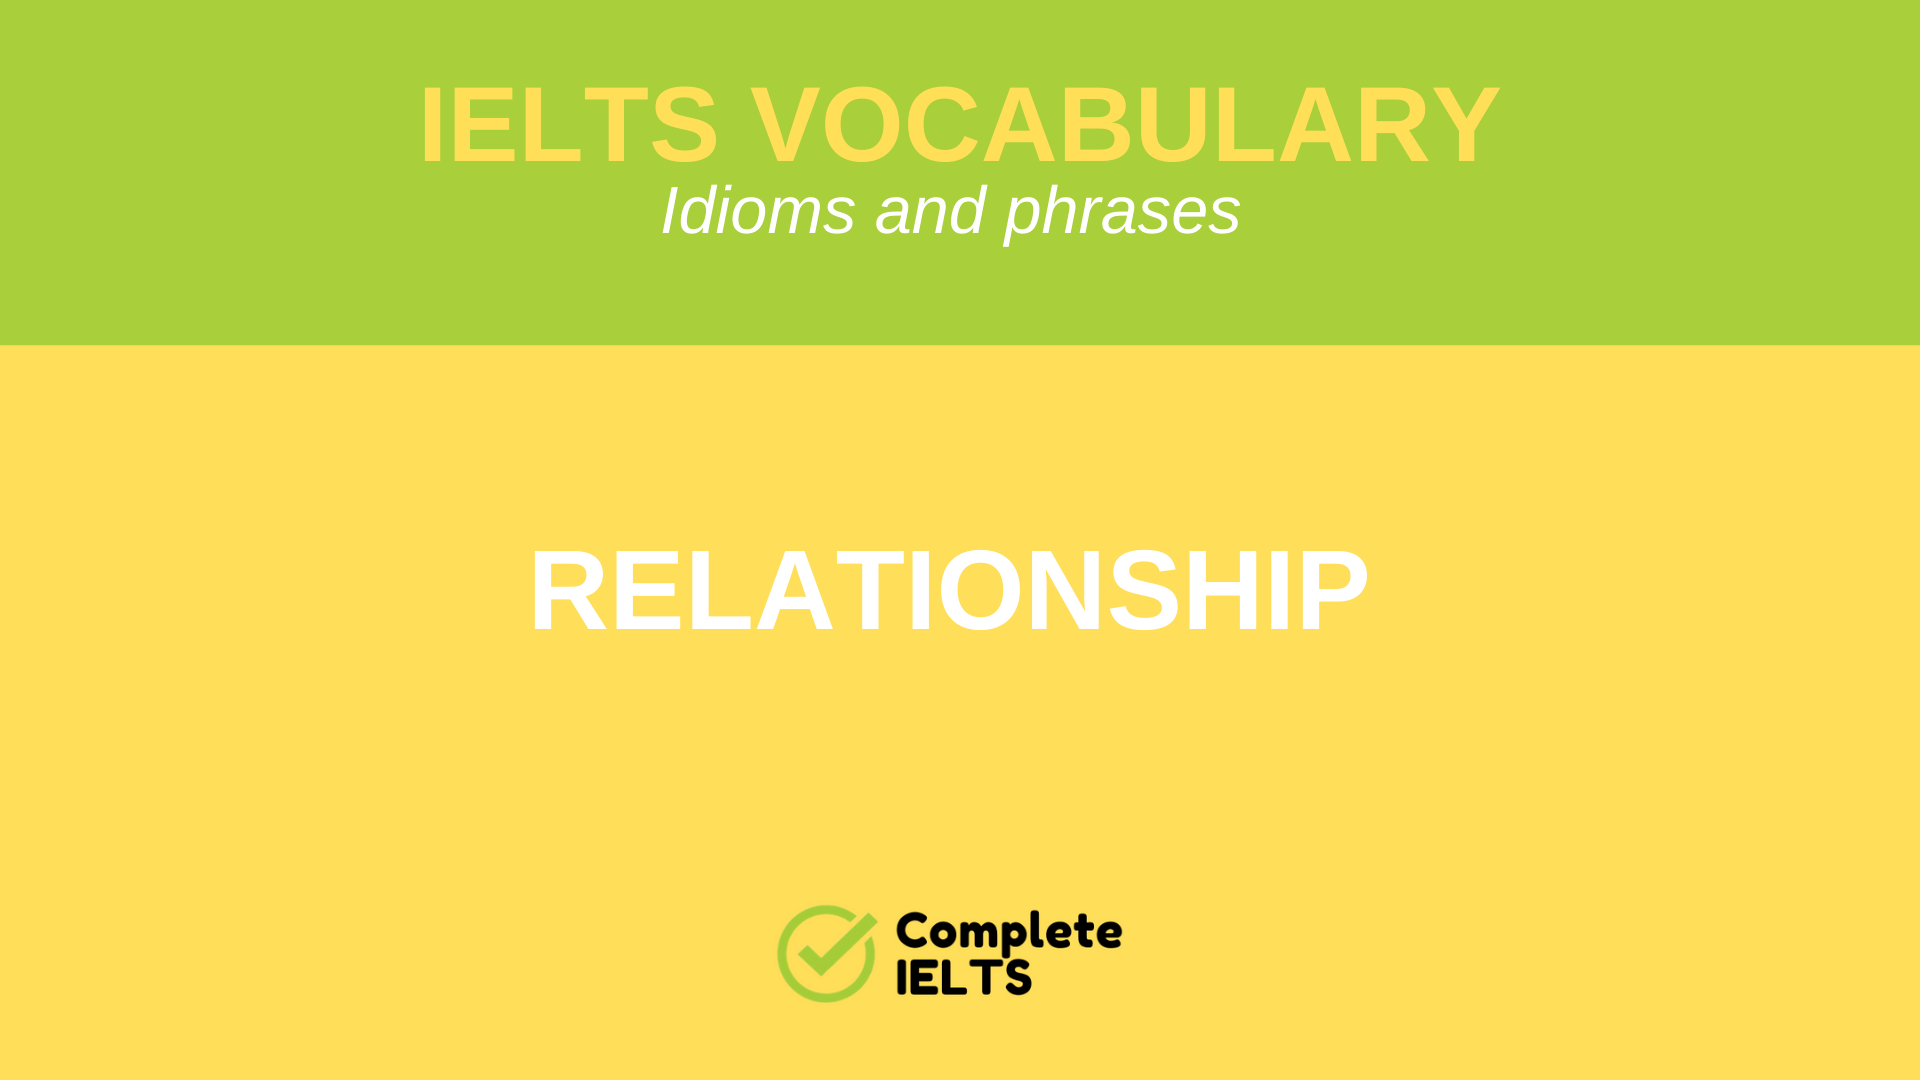 IELTS Vocabulary: Idioms and phrases for Relationship